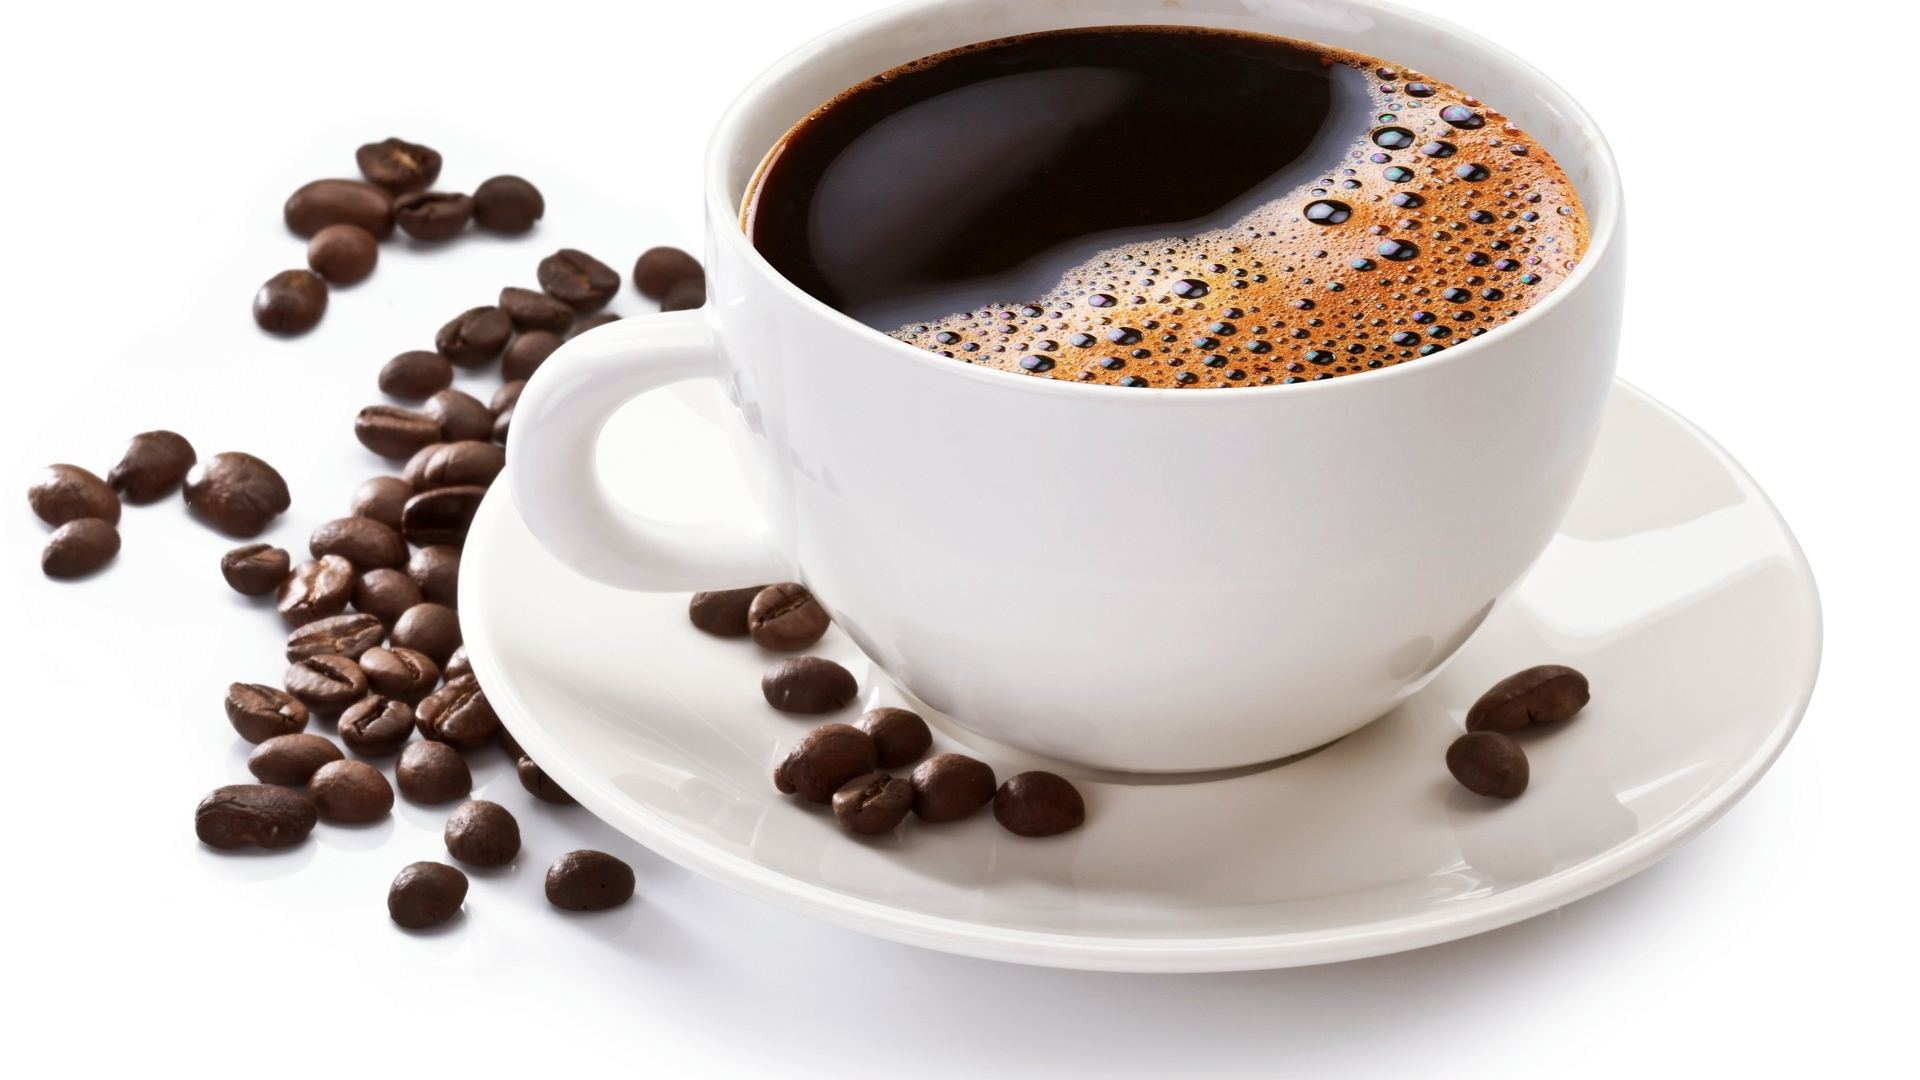 Coffee Arabica Health Benefits 3 To 4 Cups Of Coffee Daily Provide Most Health Benefits